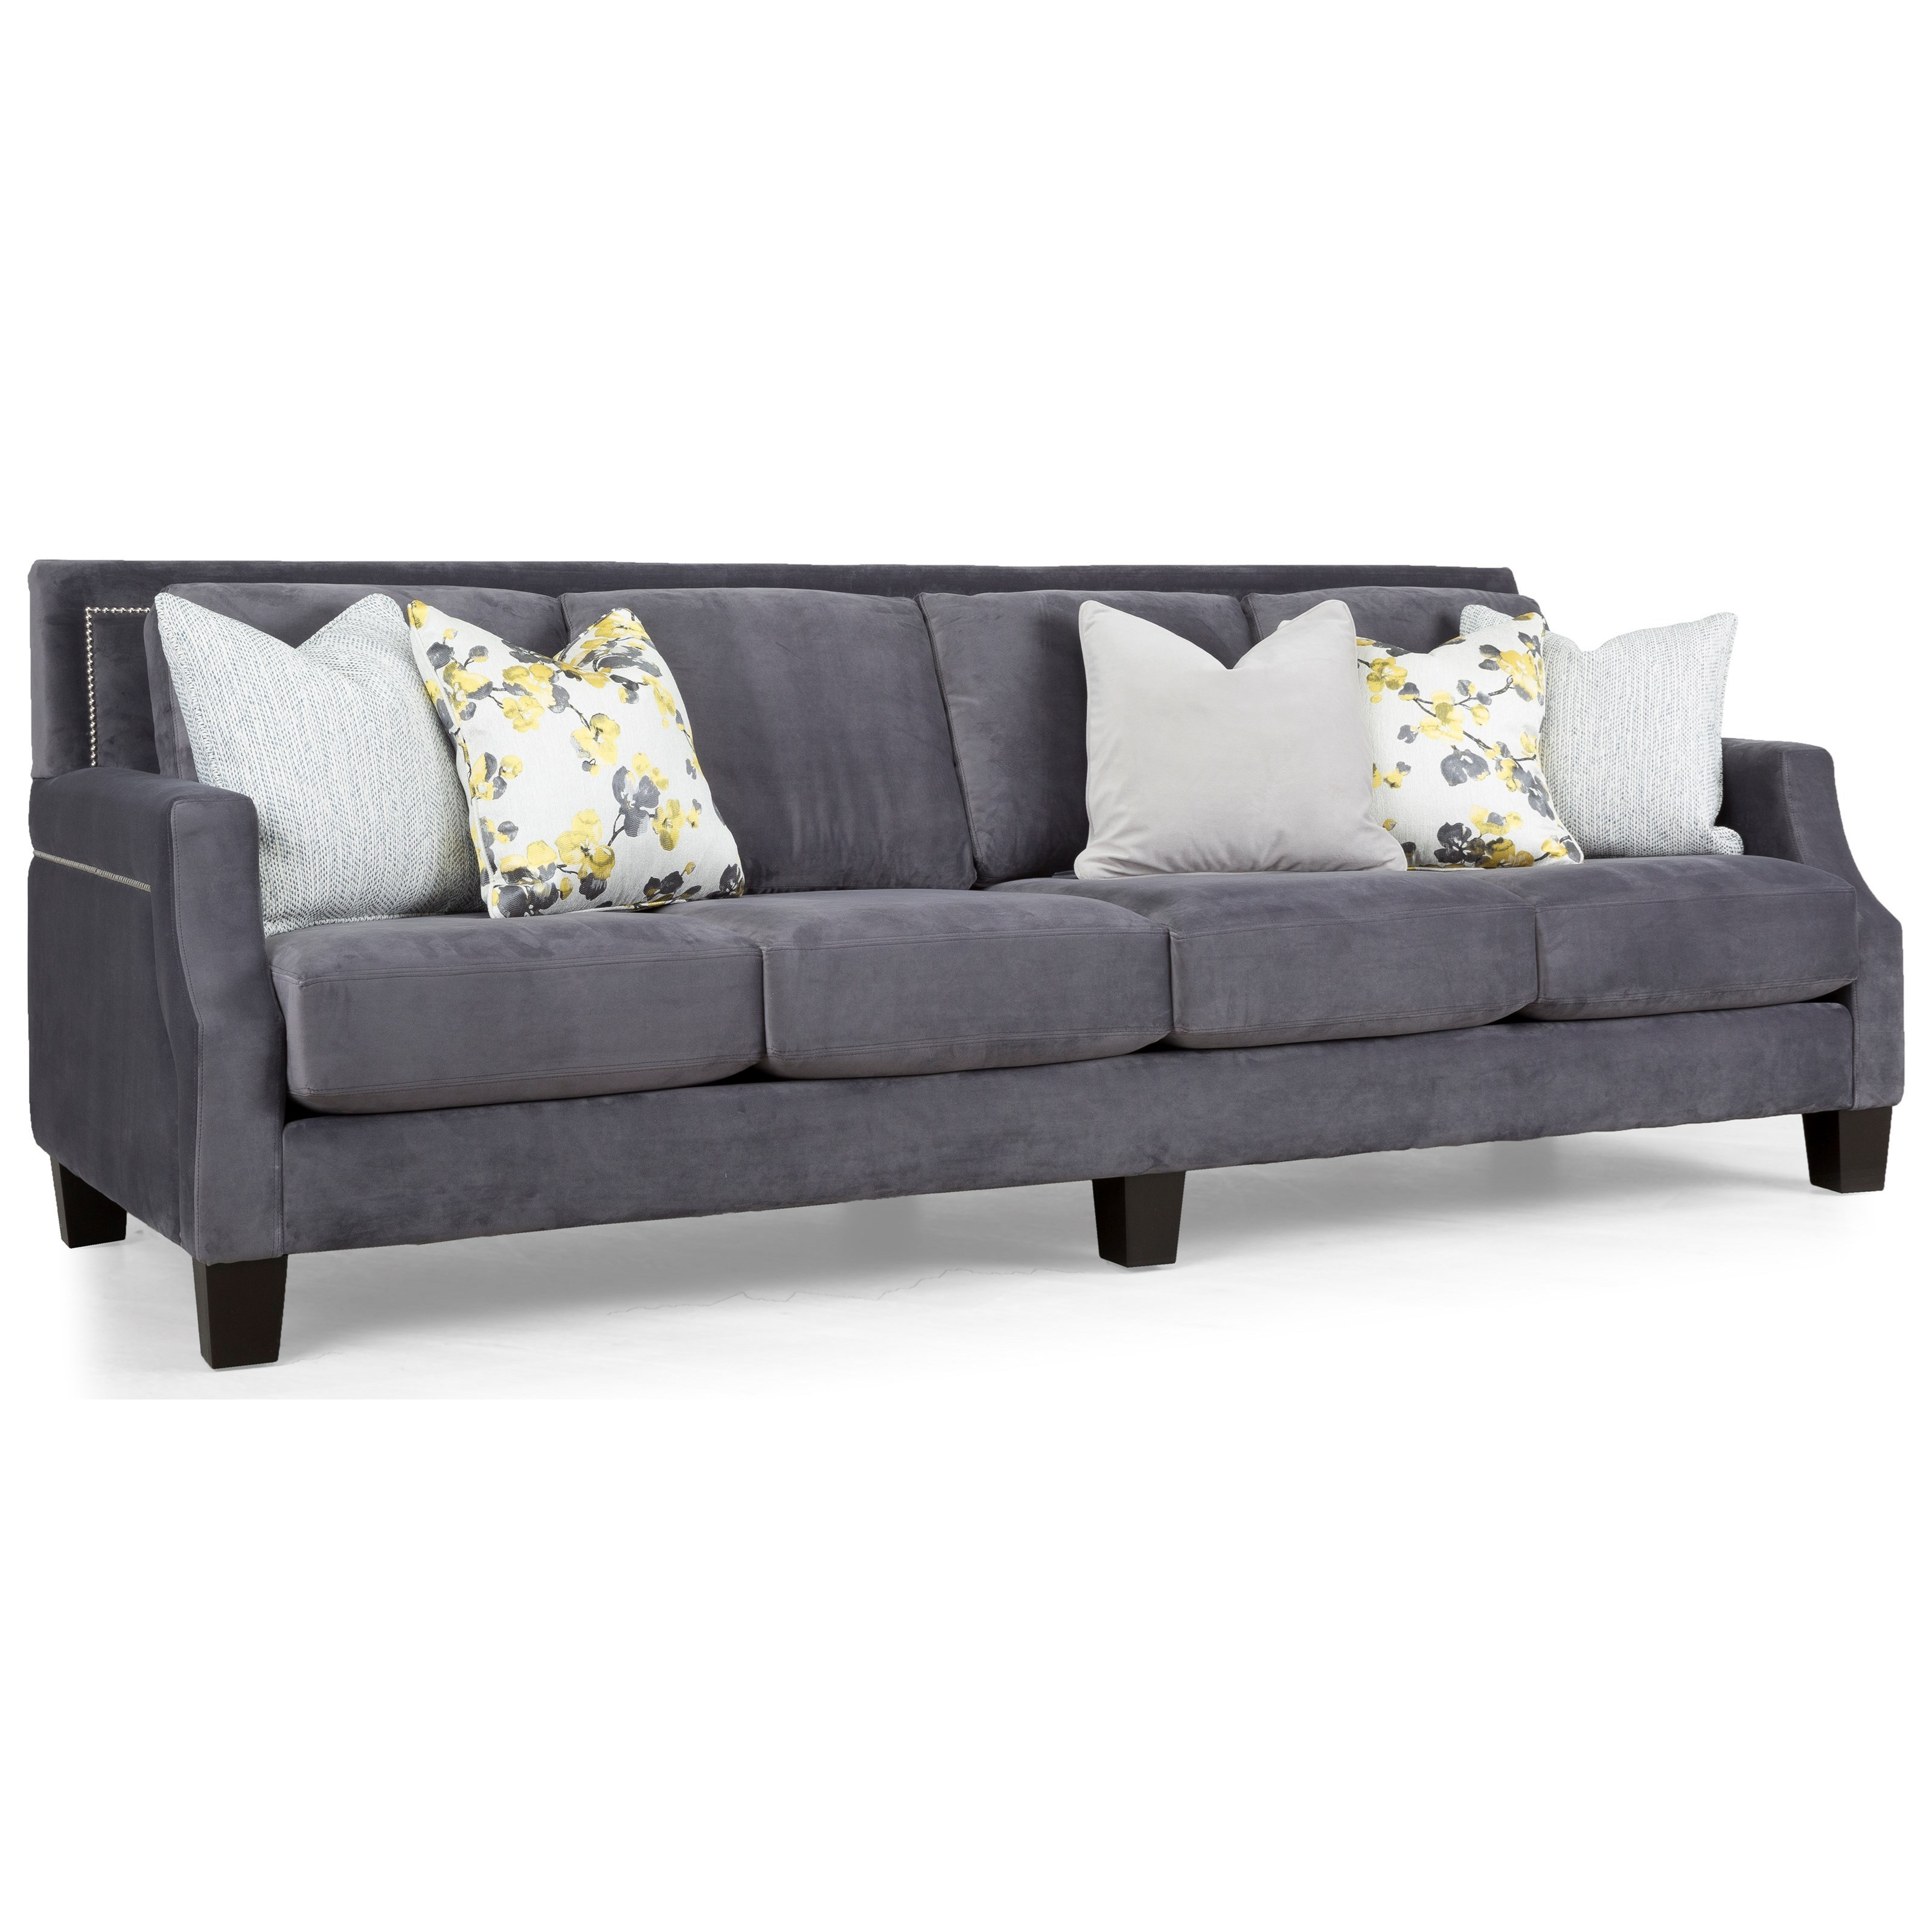 2135  4-Seater Sofa by Decor-Rest at Johnny Janosik